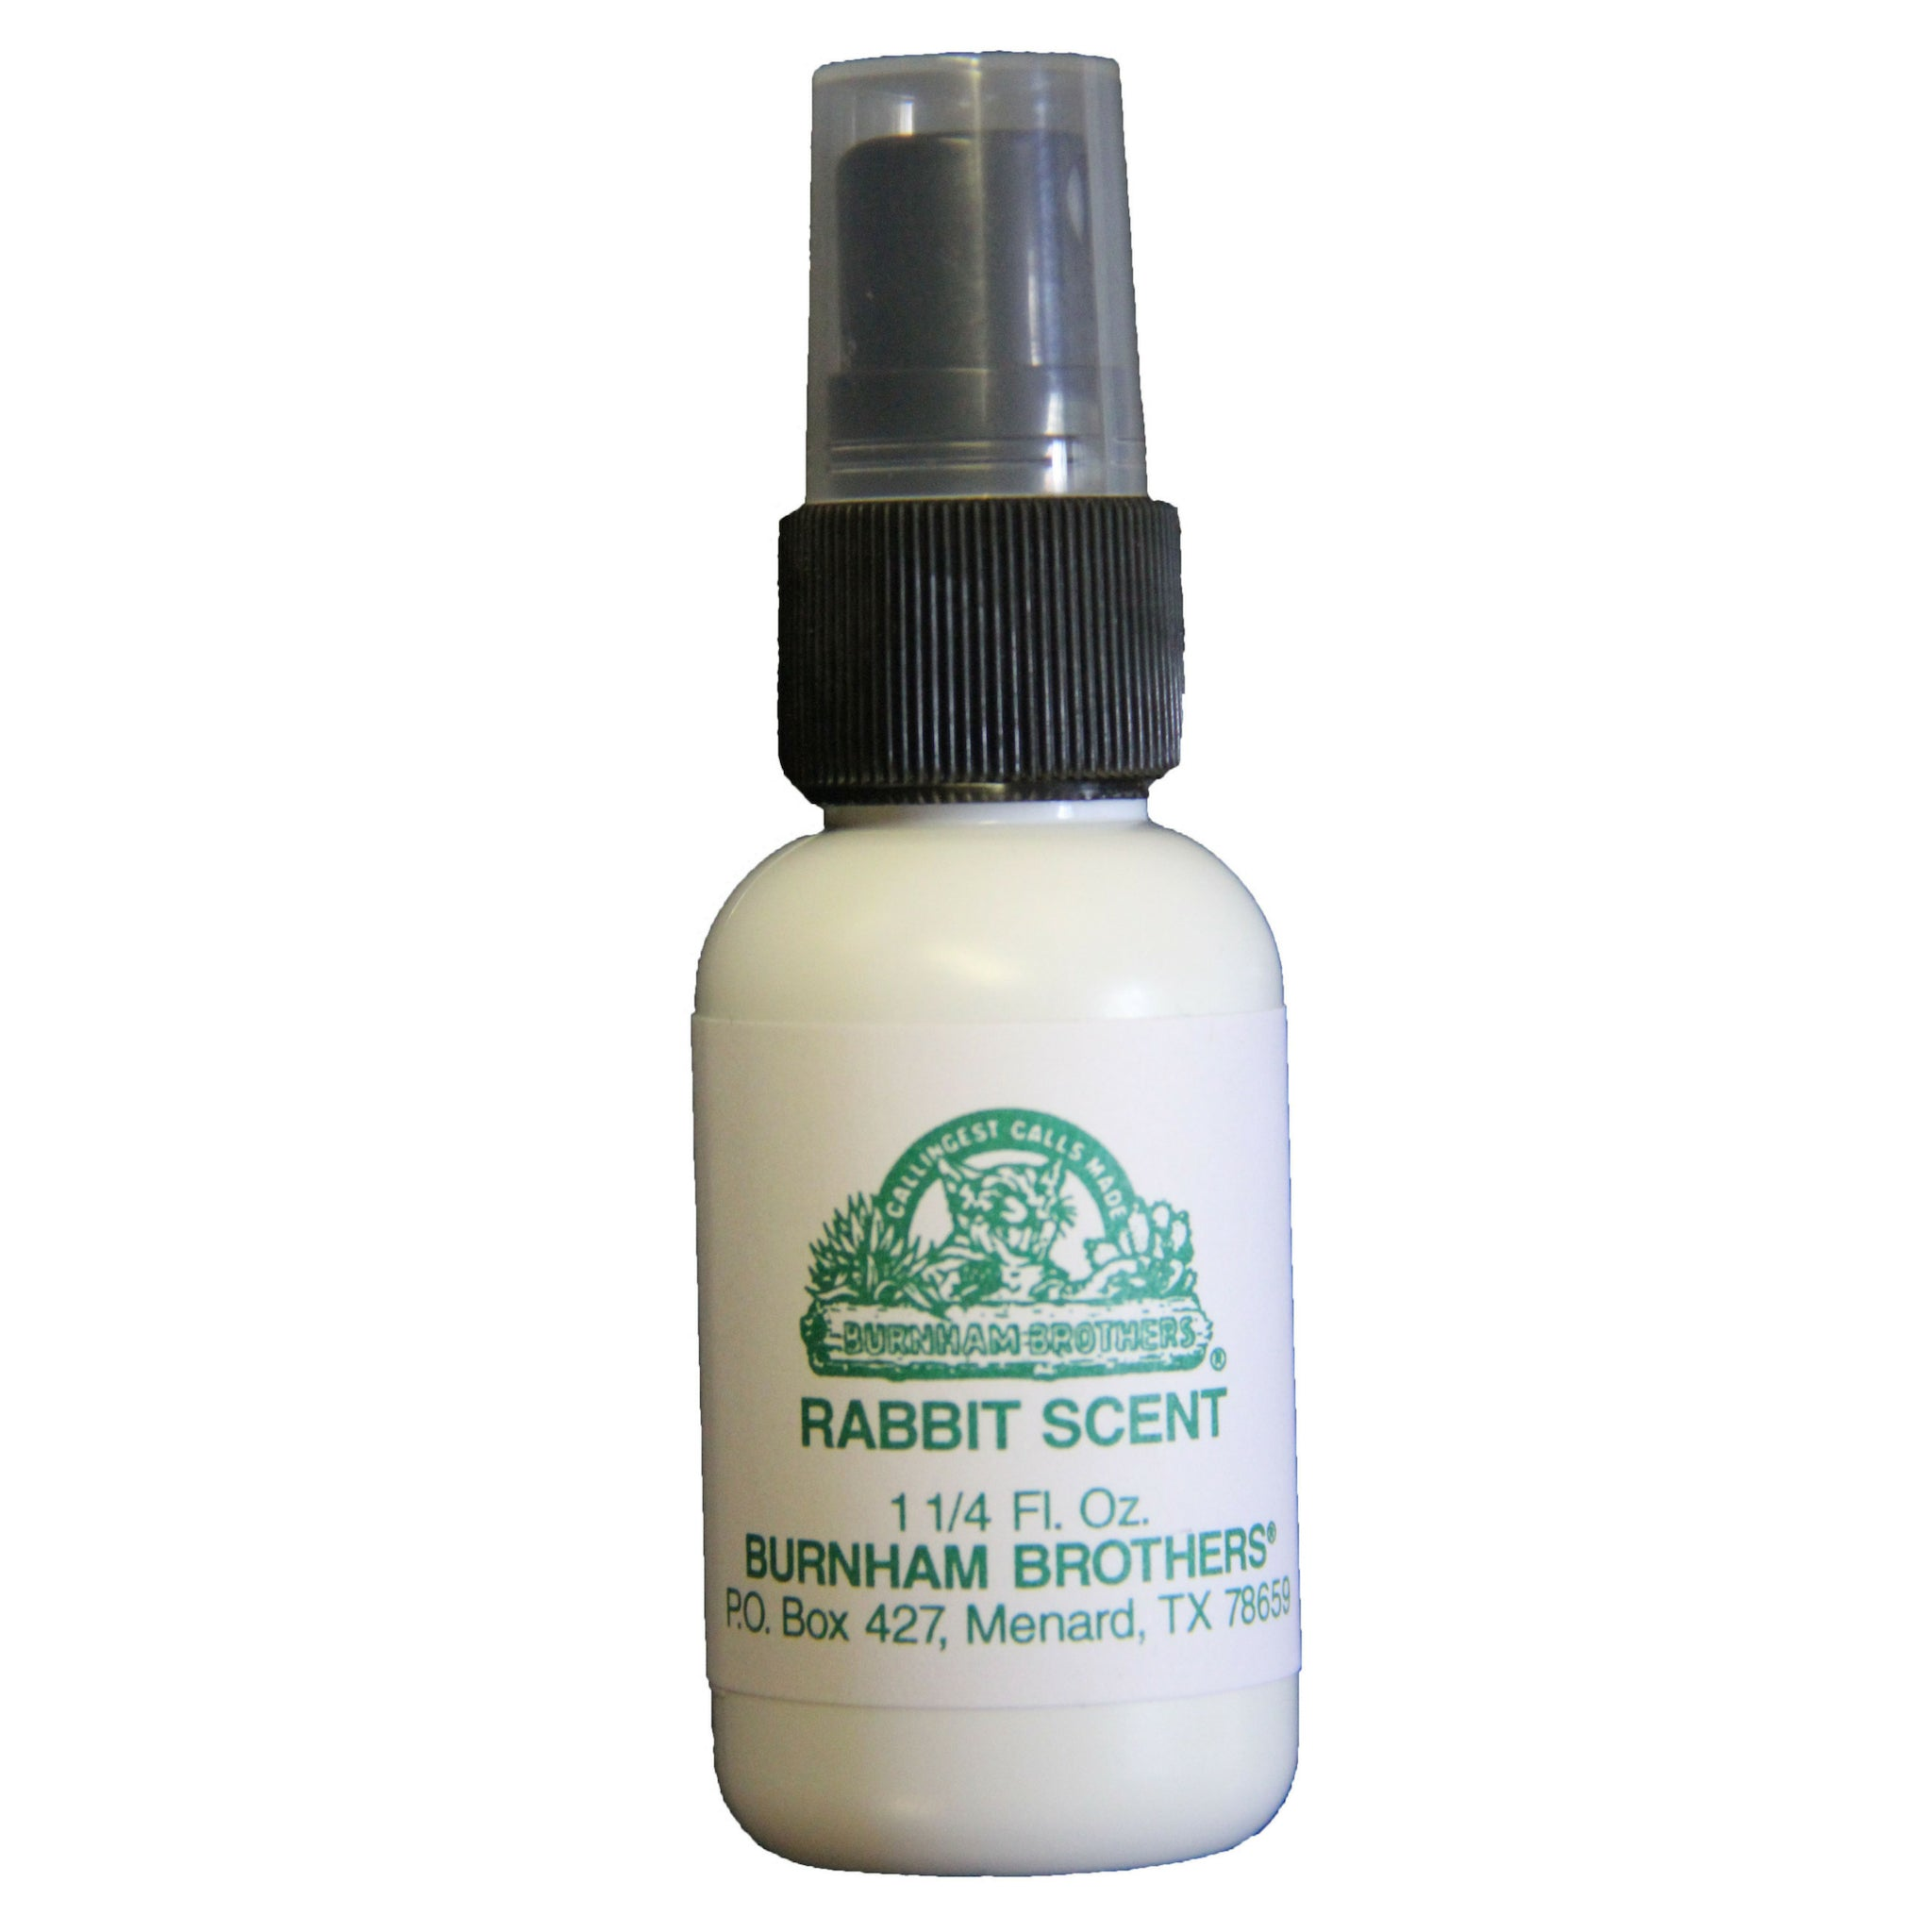 Rabbit Scent by Burnham Brothers